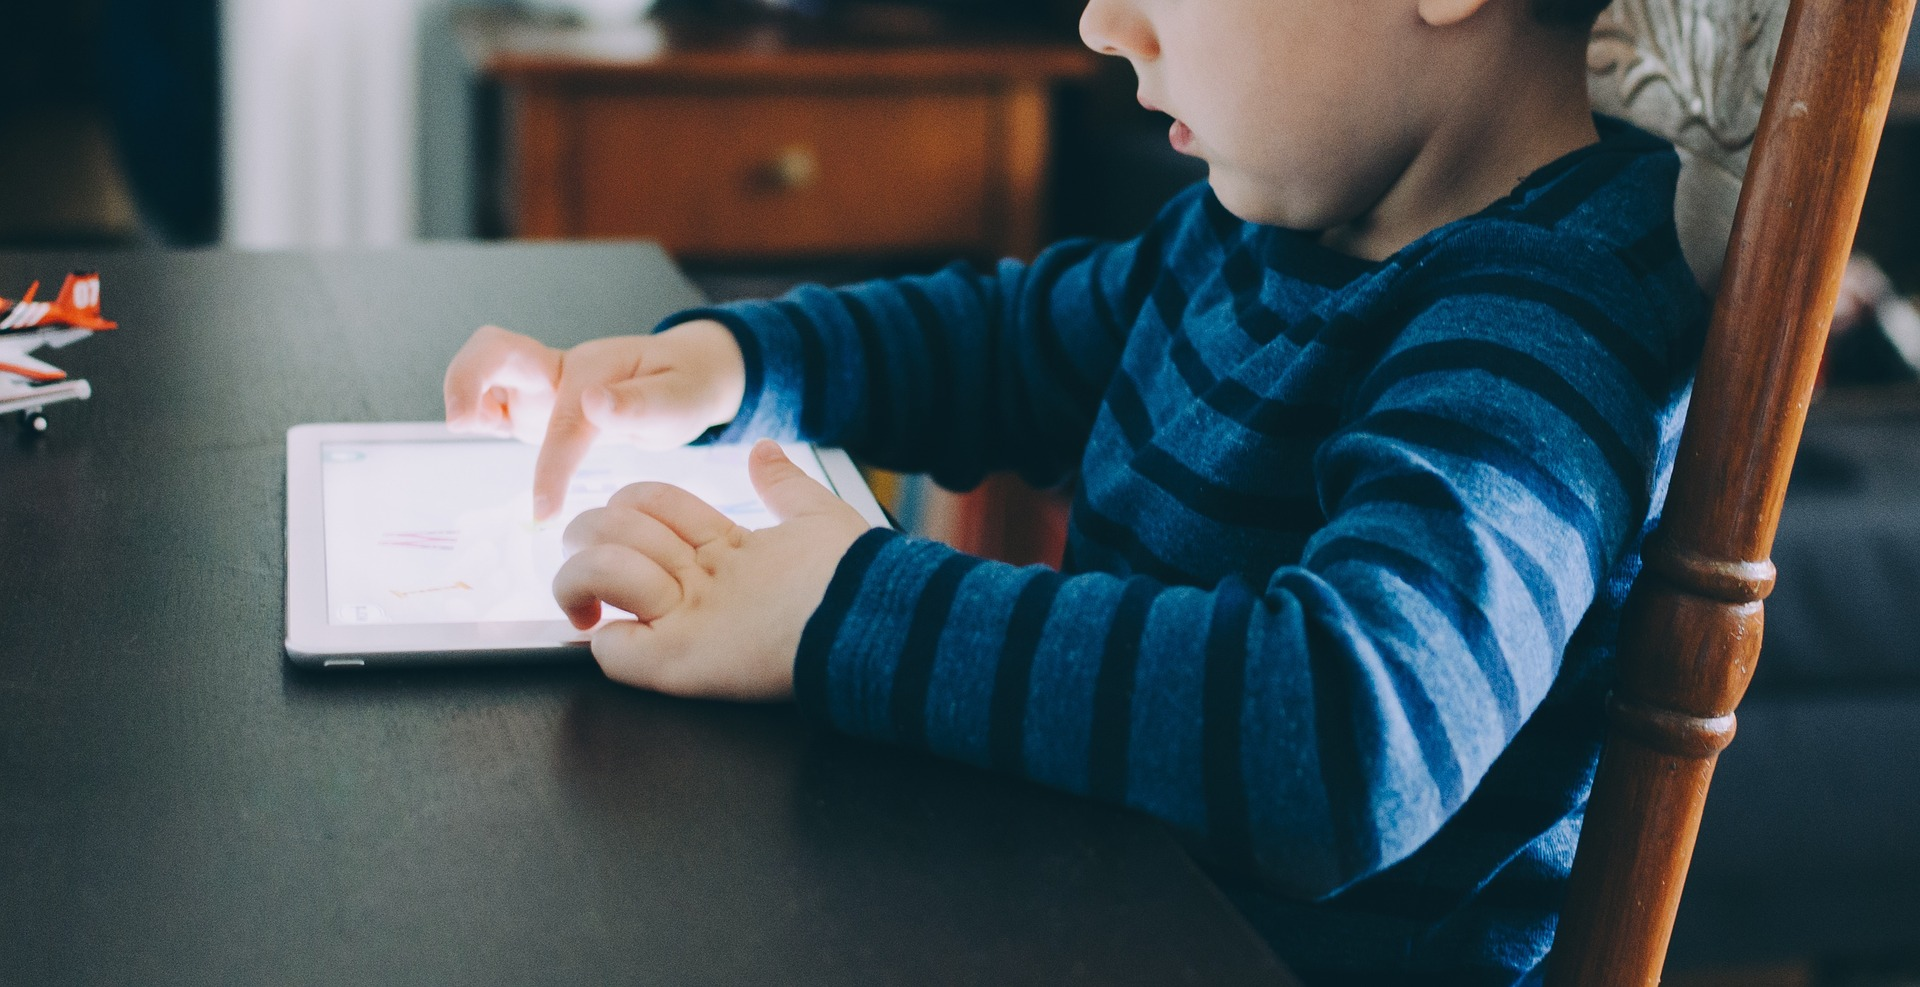 What to do when your kid is addicted to iPad games - Kidslox